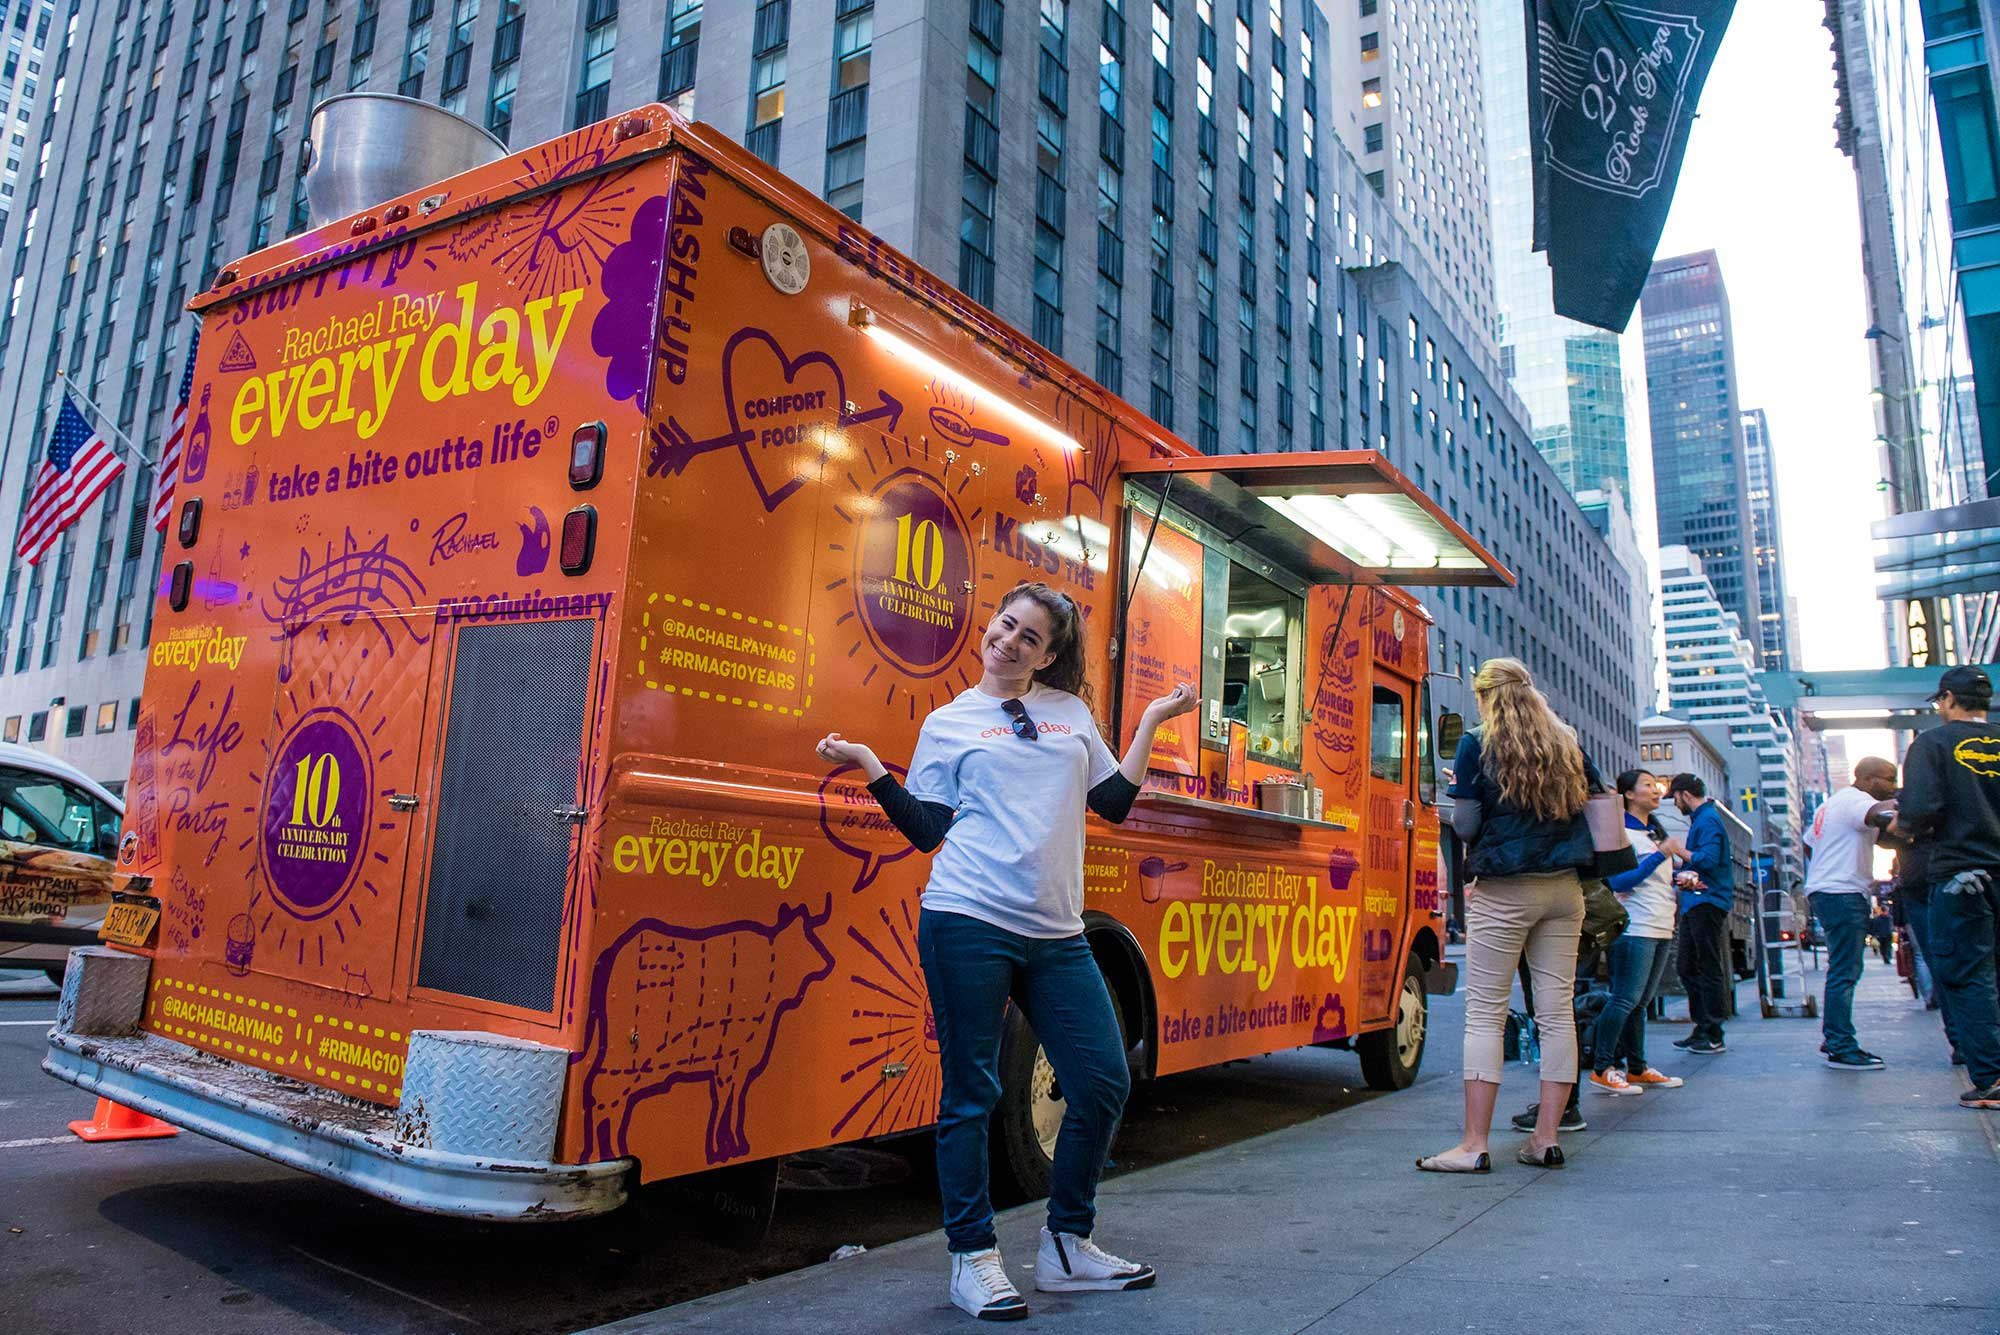 A Brand Ambassador poses with the Rachel Ray Every Day food truck, where guests received free burgers and branded sunglasses.